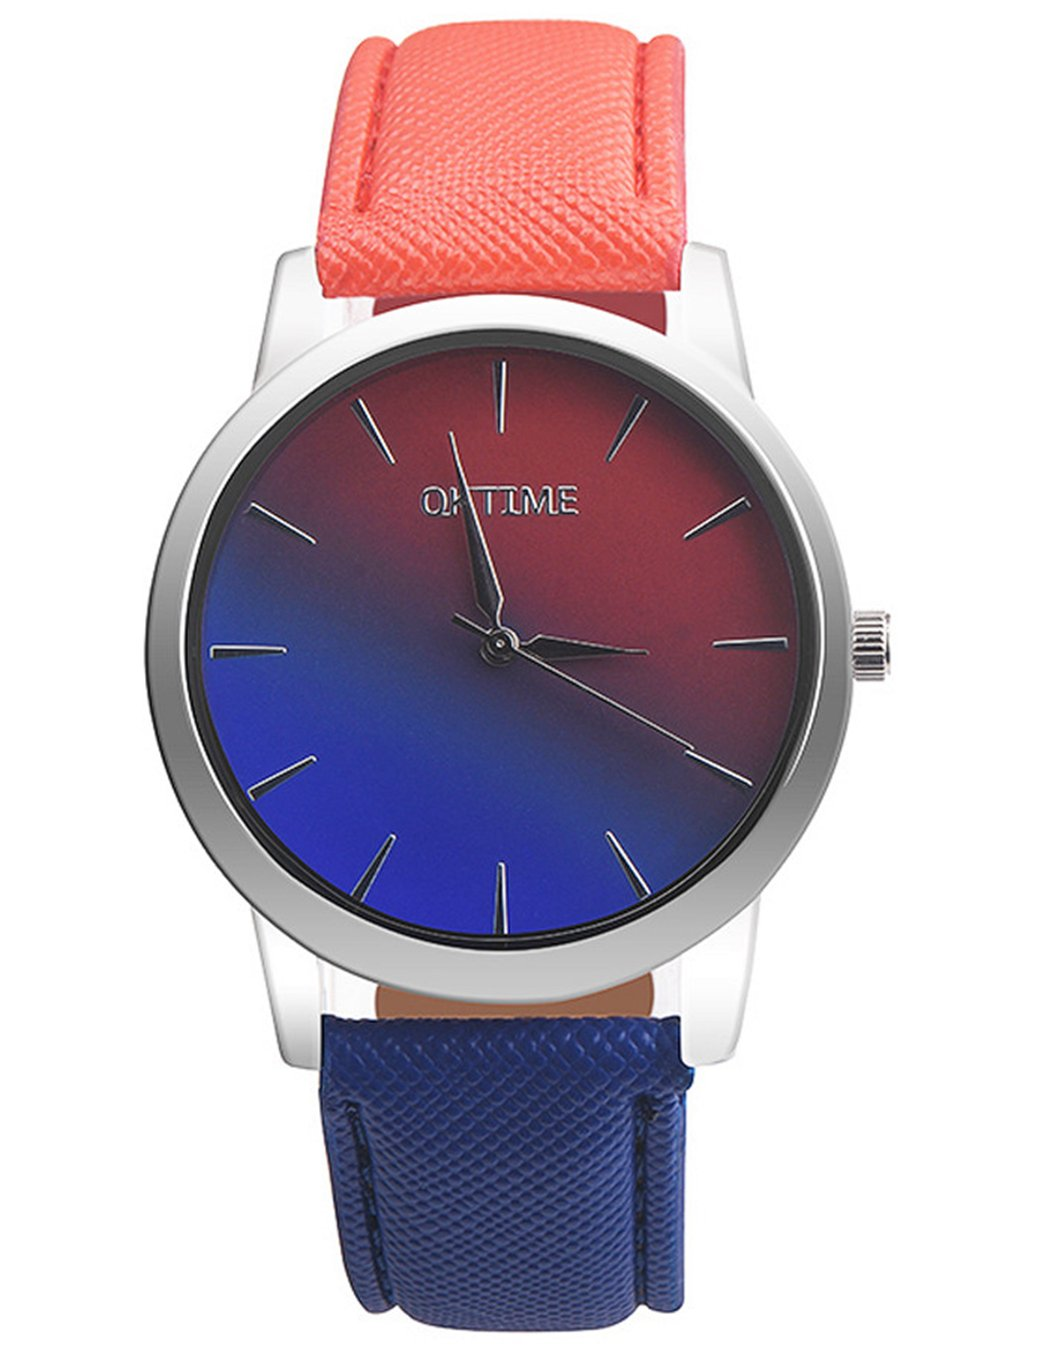 Womens Quartz Watches,COOKI Rainbow Design Unique Analog Fashion Clearance Lady Watches Female Watches on Sale Casual Wrist Watches for Women,Round Dial Case Comfortable Faux Leather-H15 (Red)